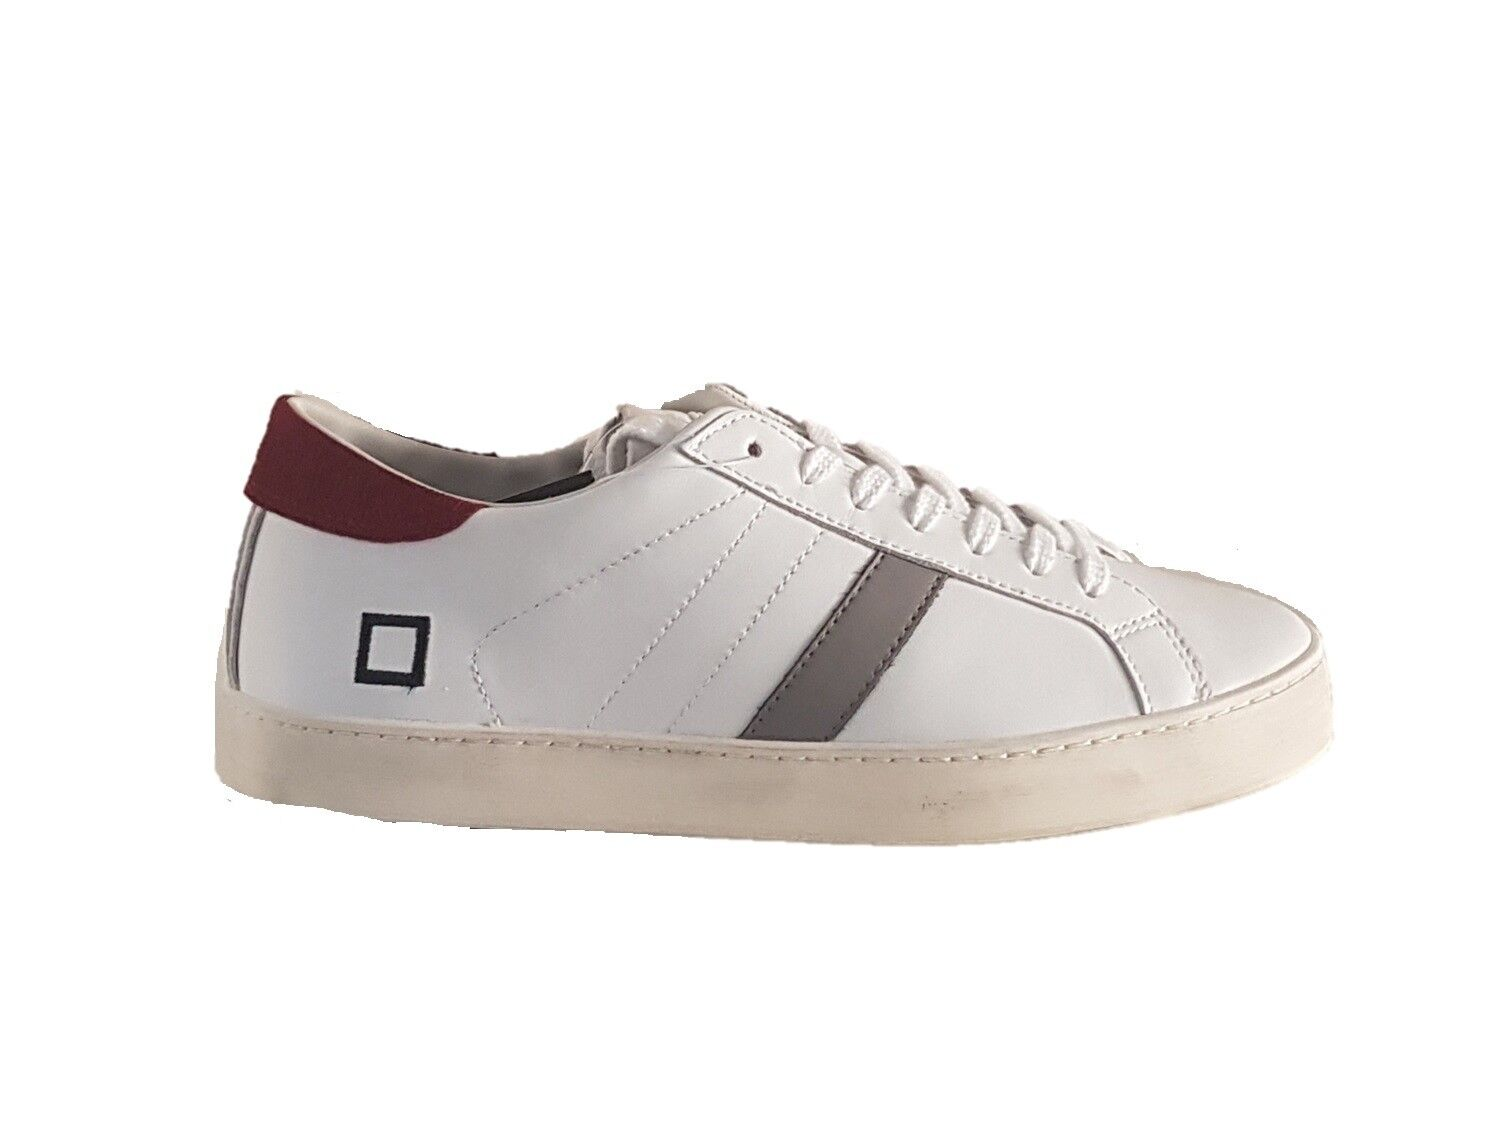 d.a.t.e. sneakers uomo red hill low calf white red uomo n°45 09299c